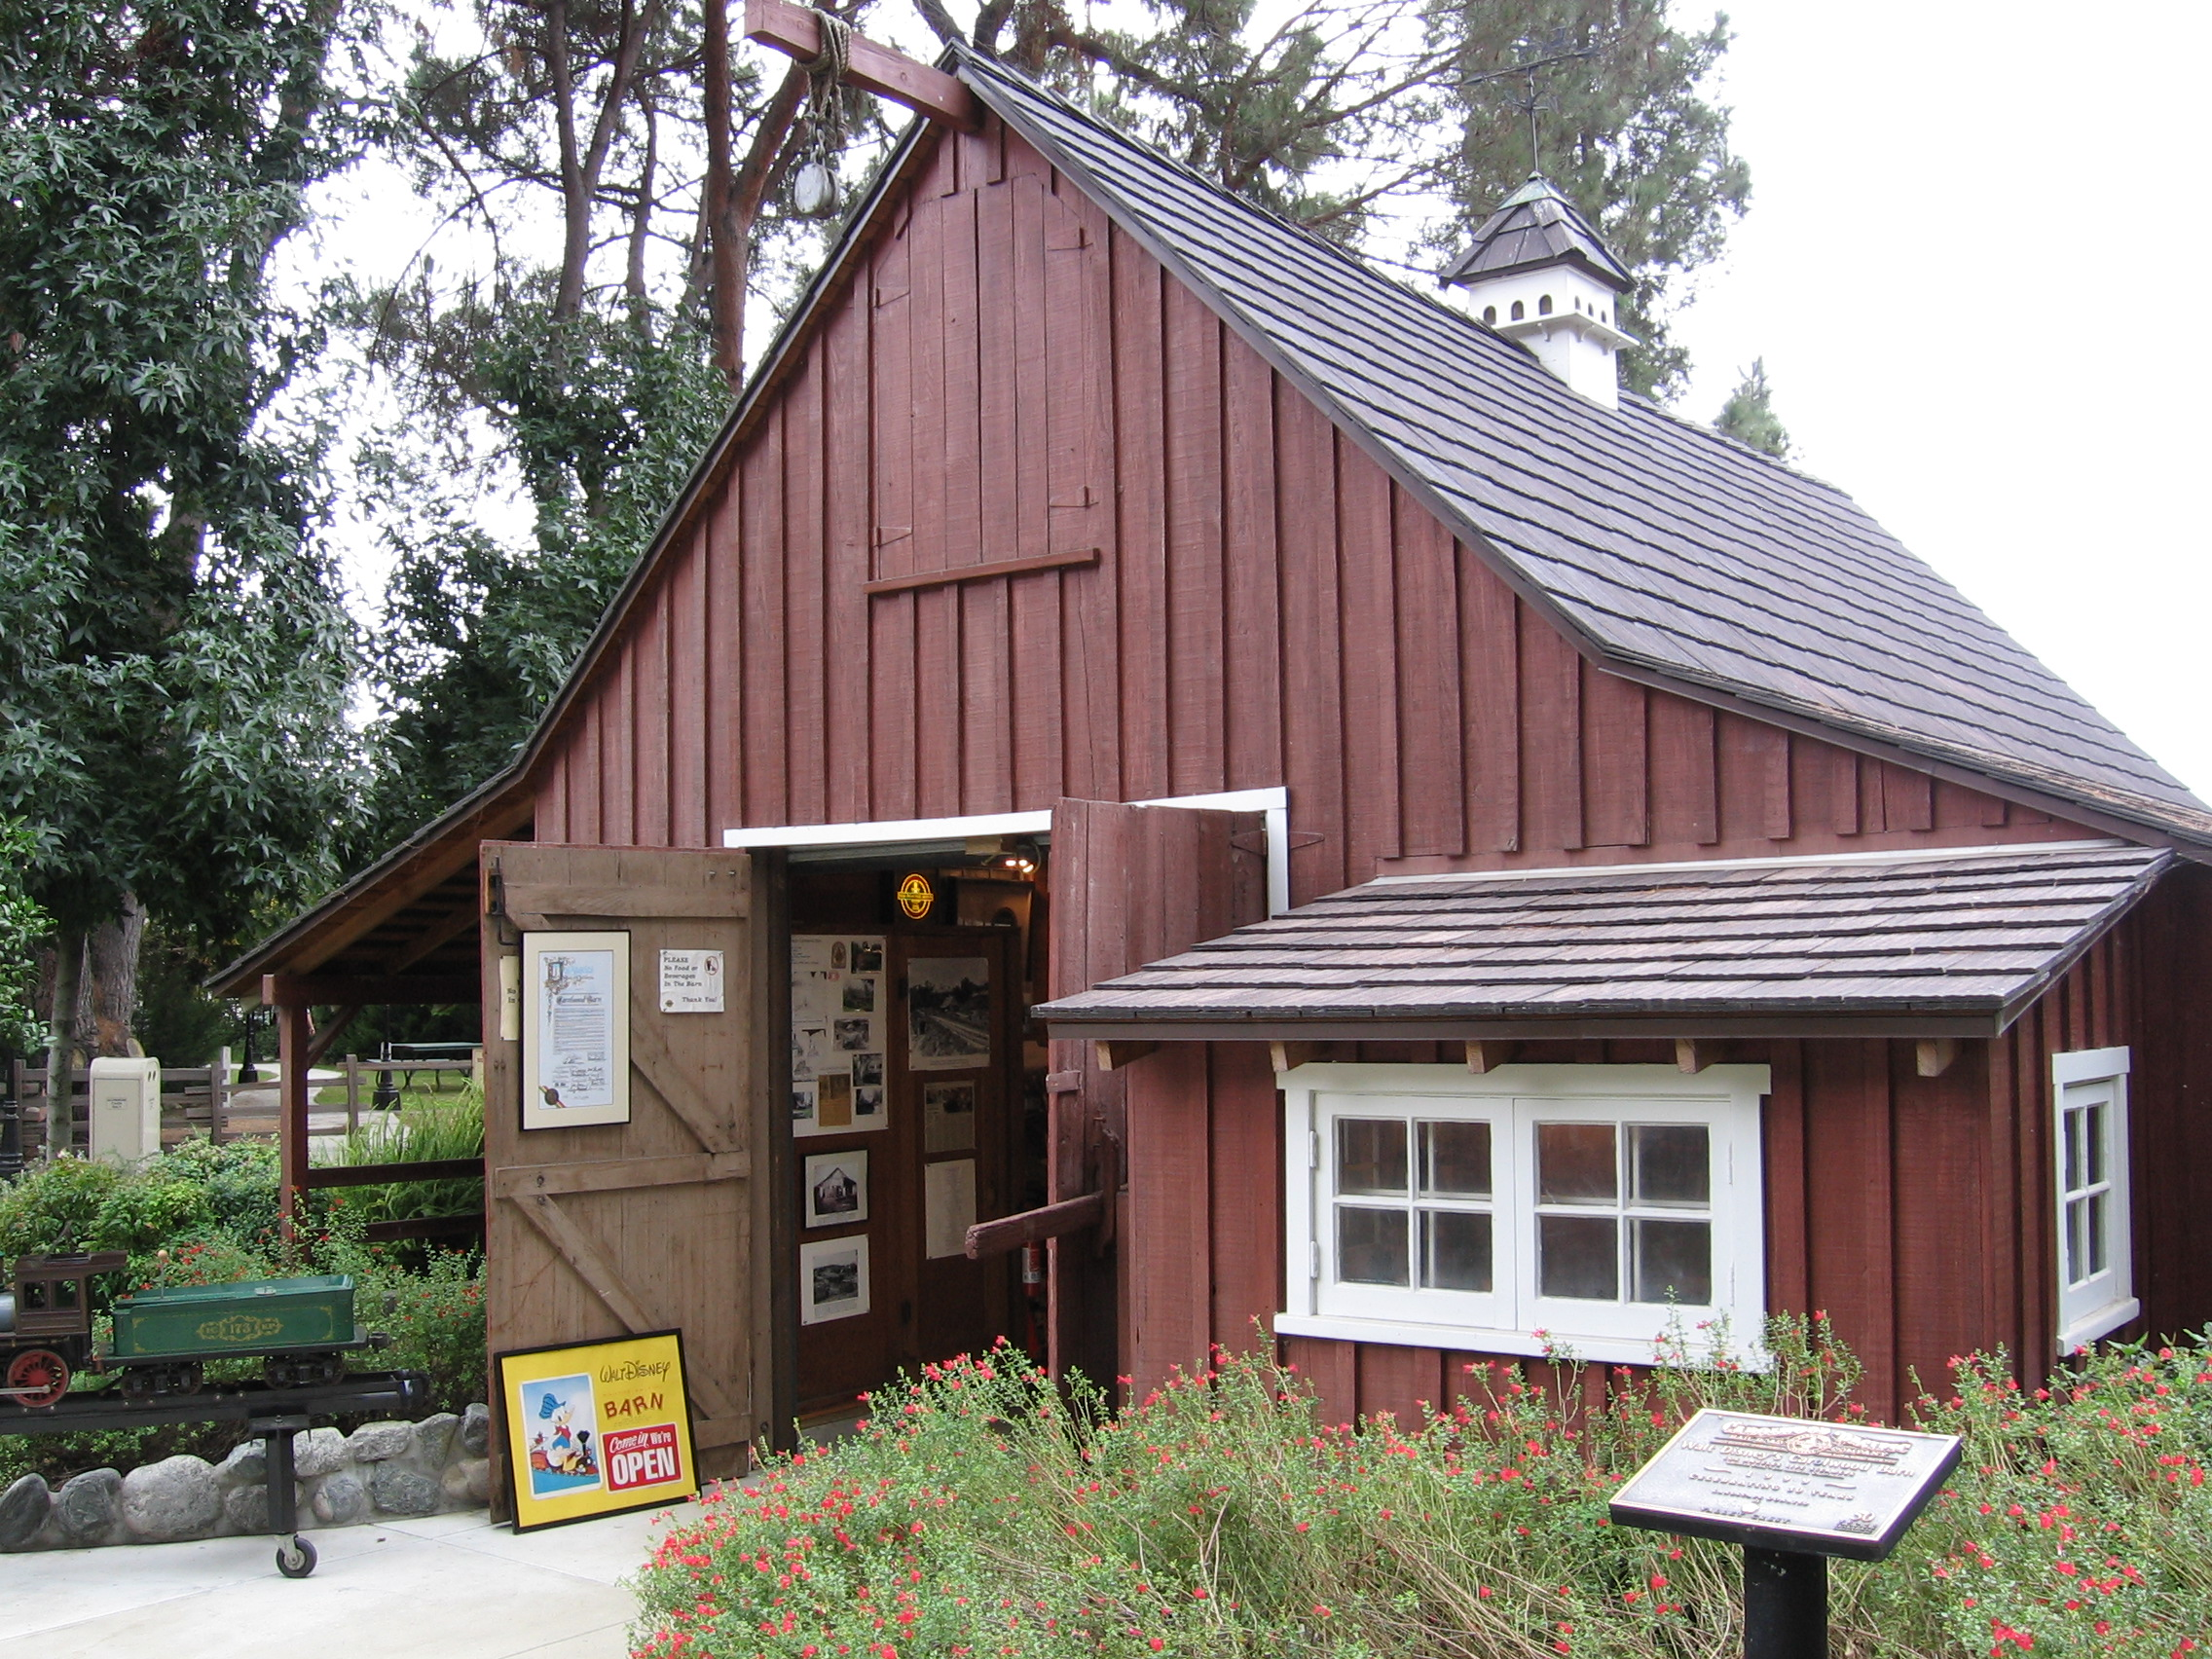 Walt Disney's Carolwood Barn has been converted into a museum showcasing Disney's love for trains and model railroading.